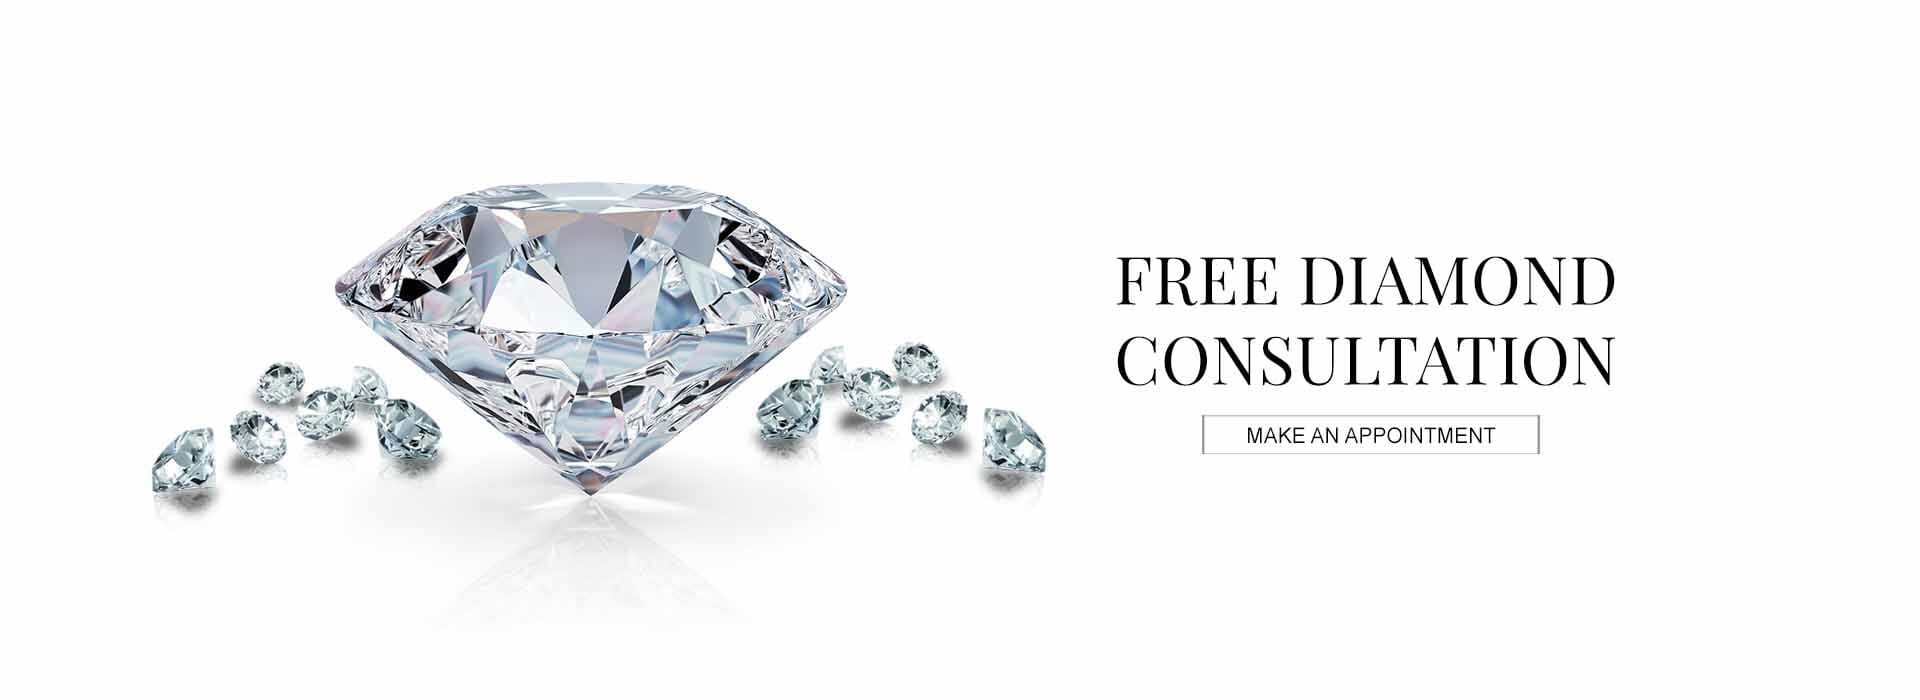 Free Diamond Consultation - Schedule an Appointment